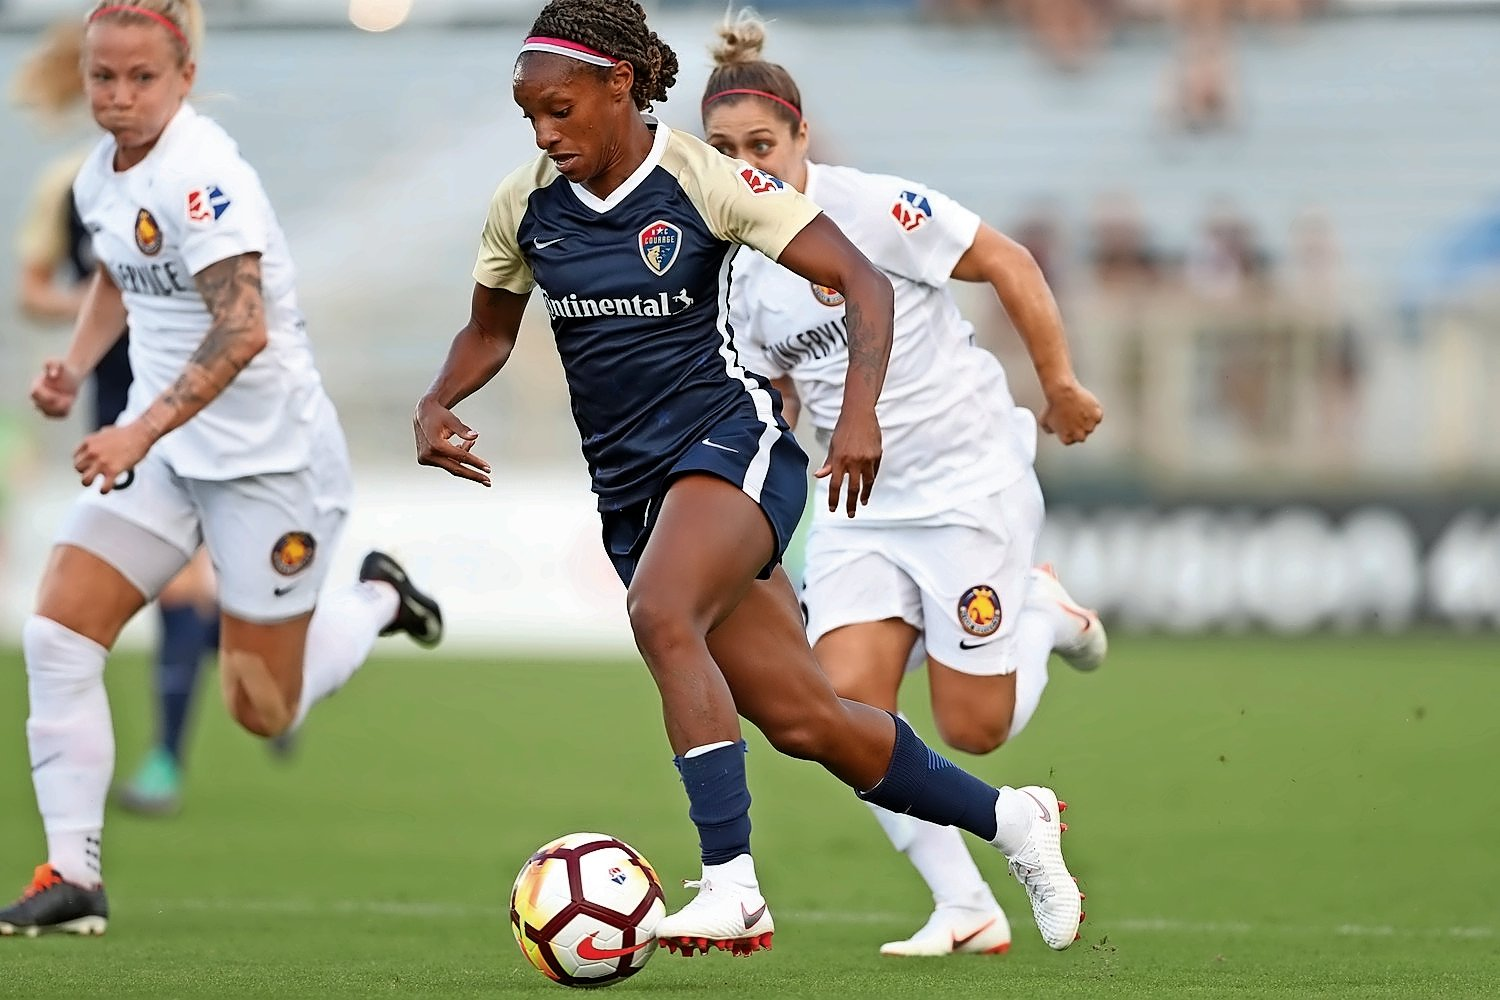 Rockville Centre native Crystal Dunn is receiving special recognition for helping lead Team USA to victory in the 2019 World Cup.